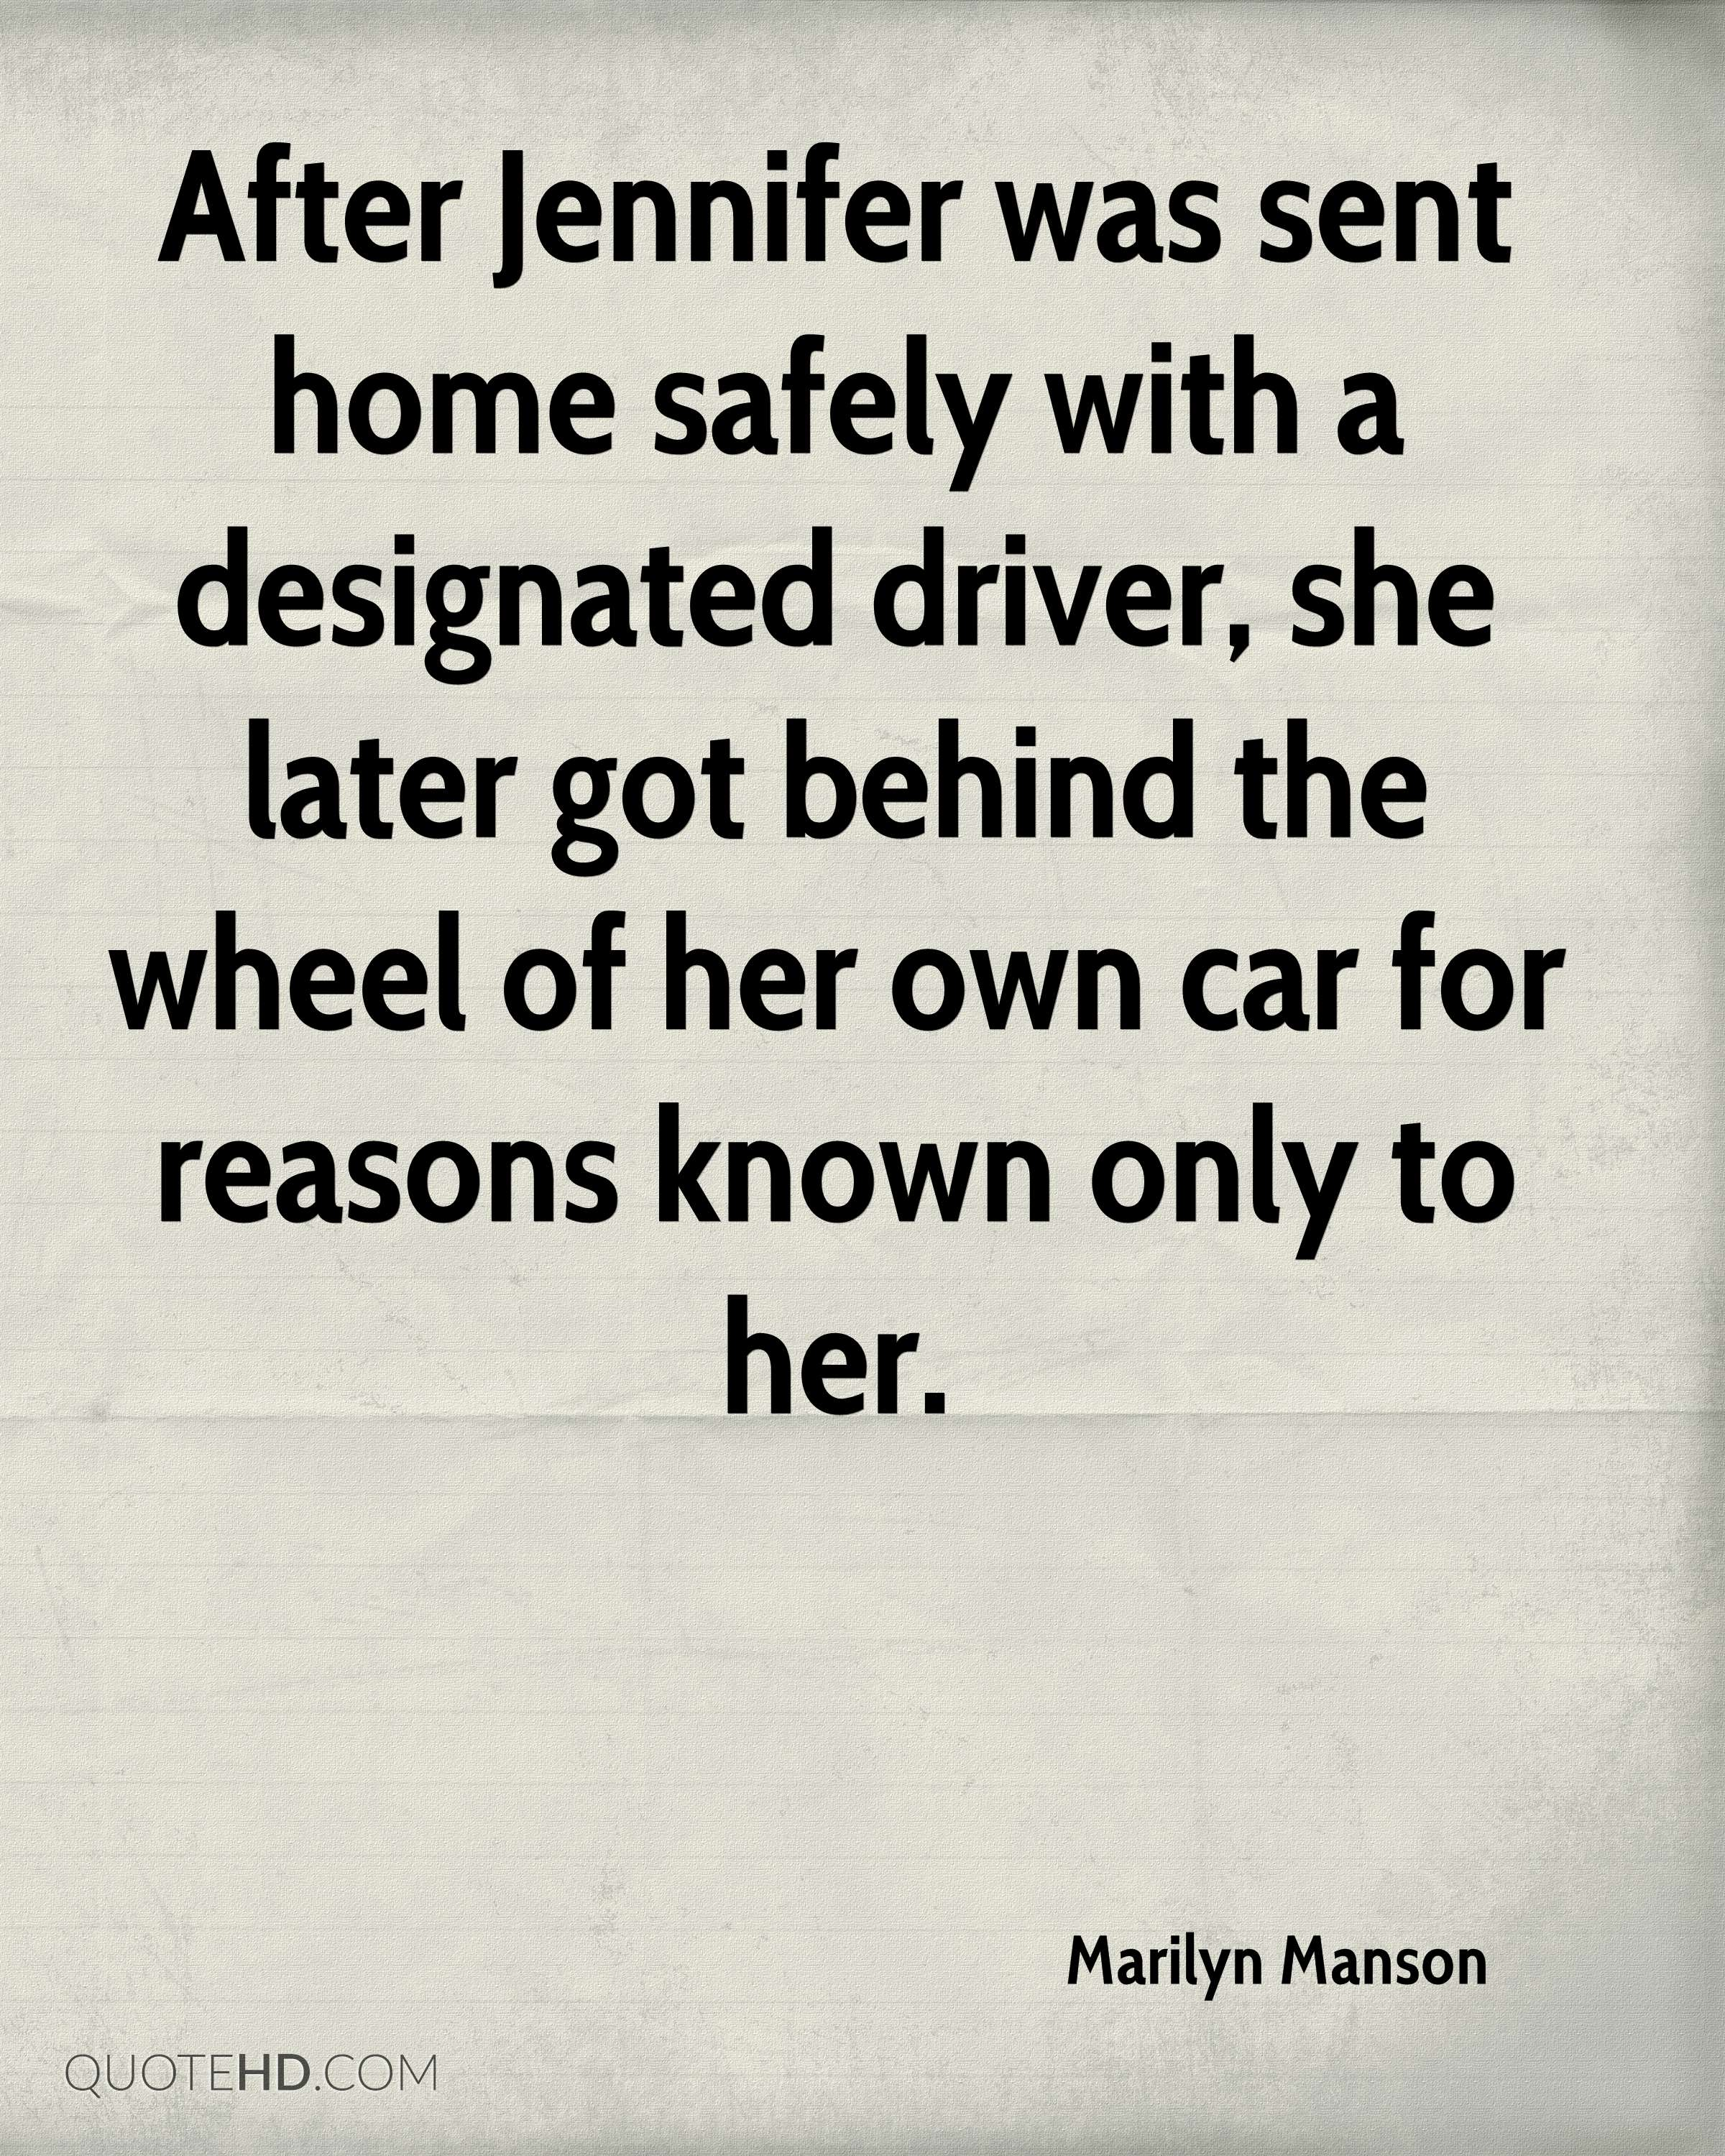 After Jennifer was sent home safely with a designated driver, she later got behind the wheel of her own car for reasons known only to her.